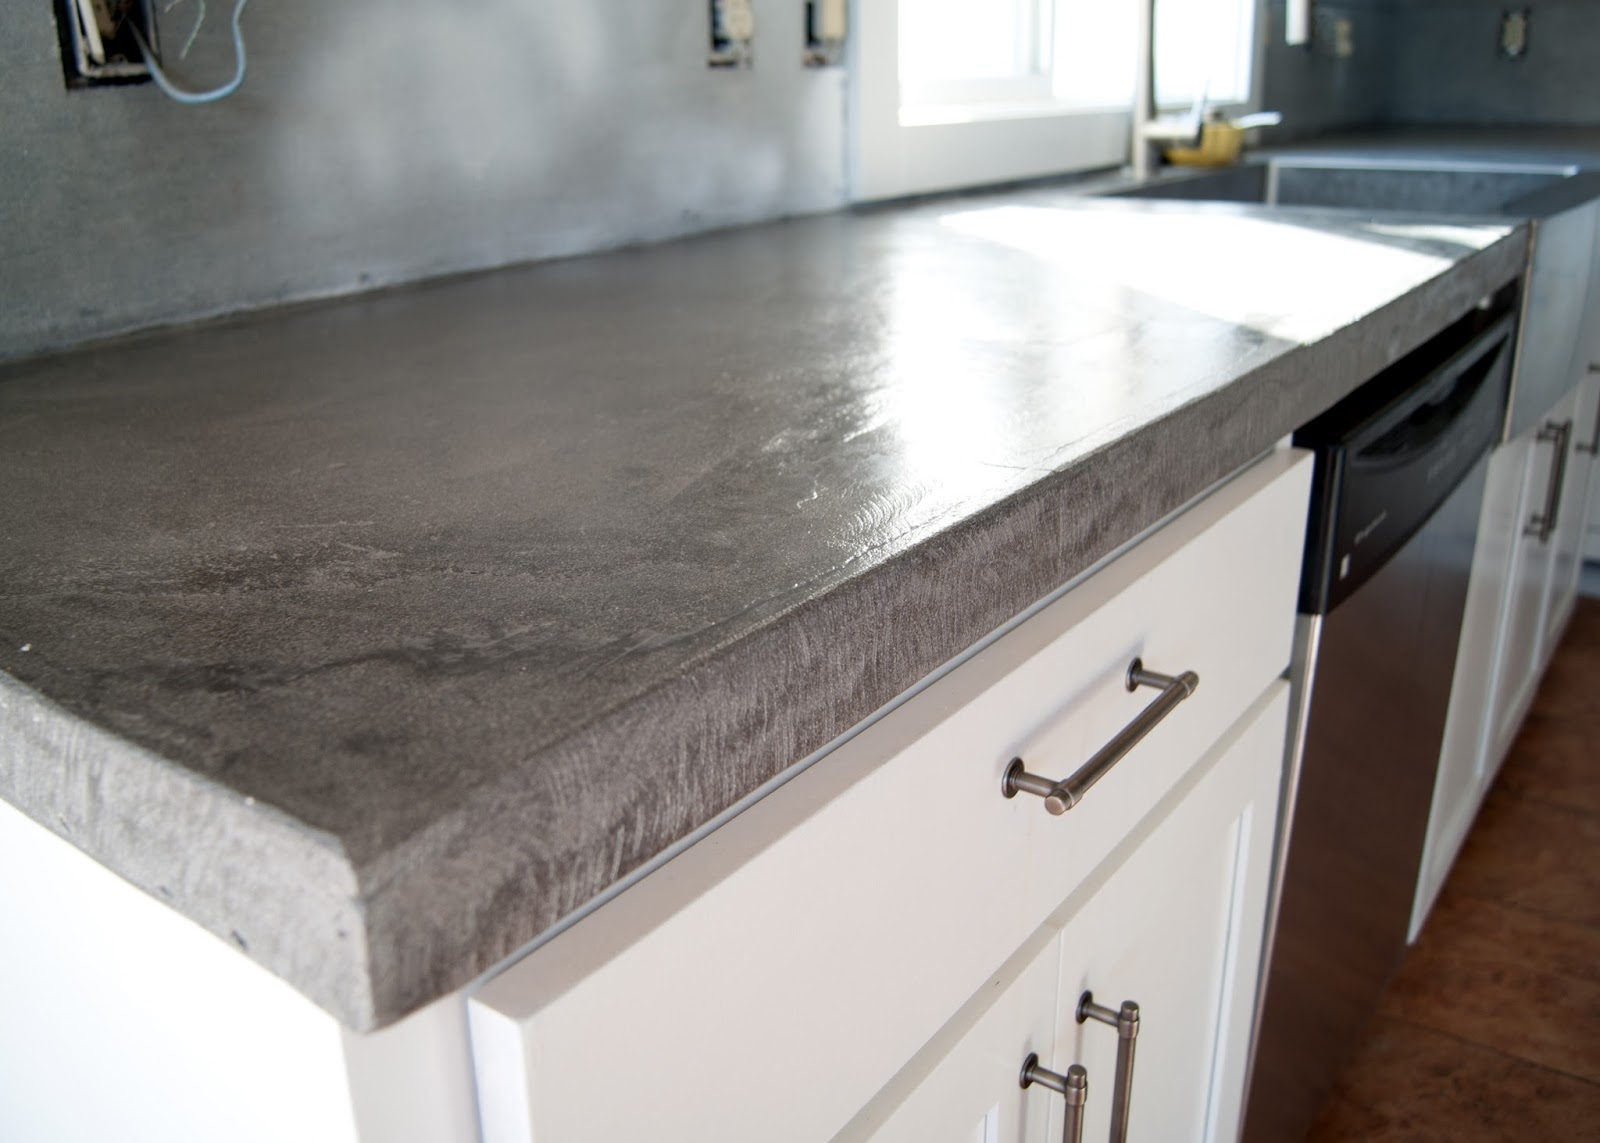 What Kind Of Concrete To Use For Countertops How To Build A Classy Concrete Countertop Steve 39s U Cart